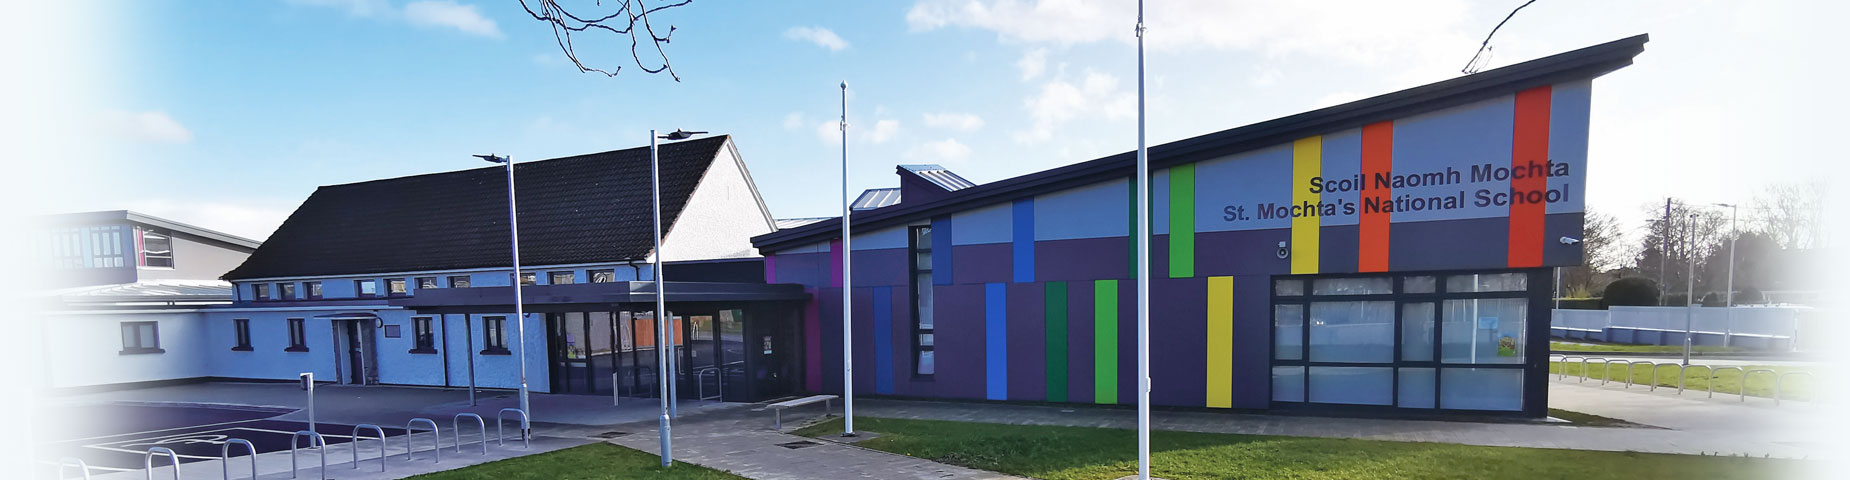 St Mochta's National School building front